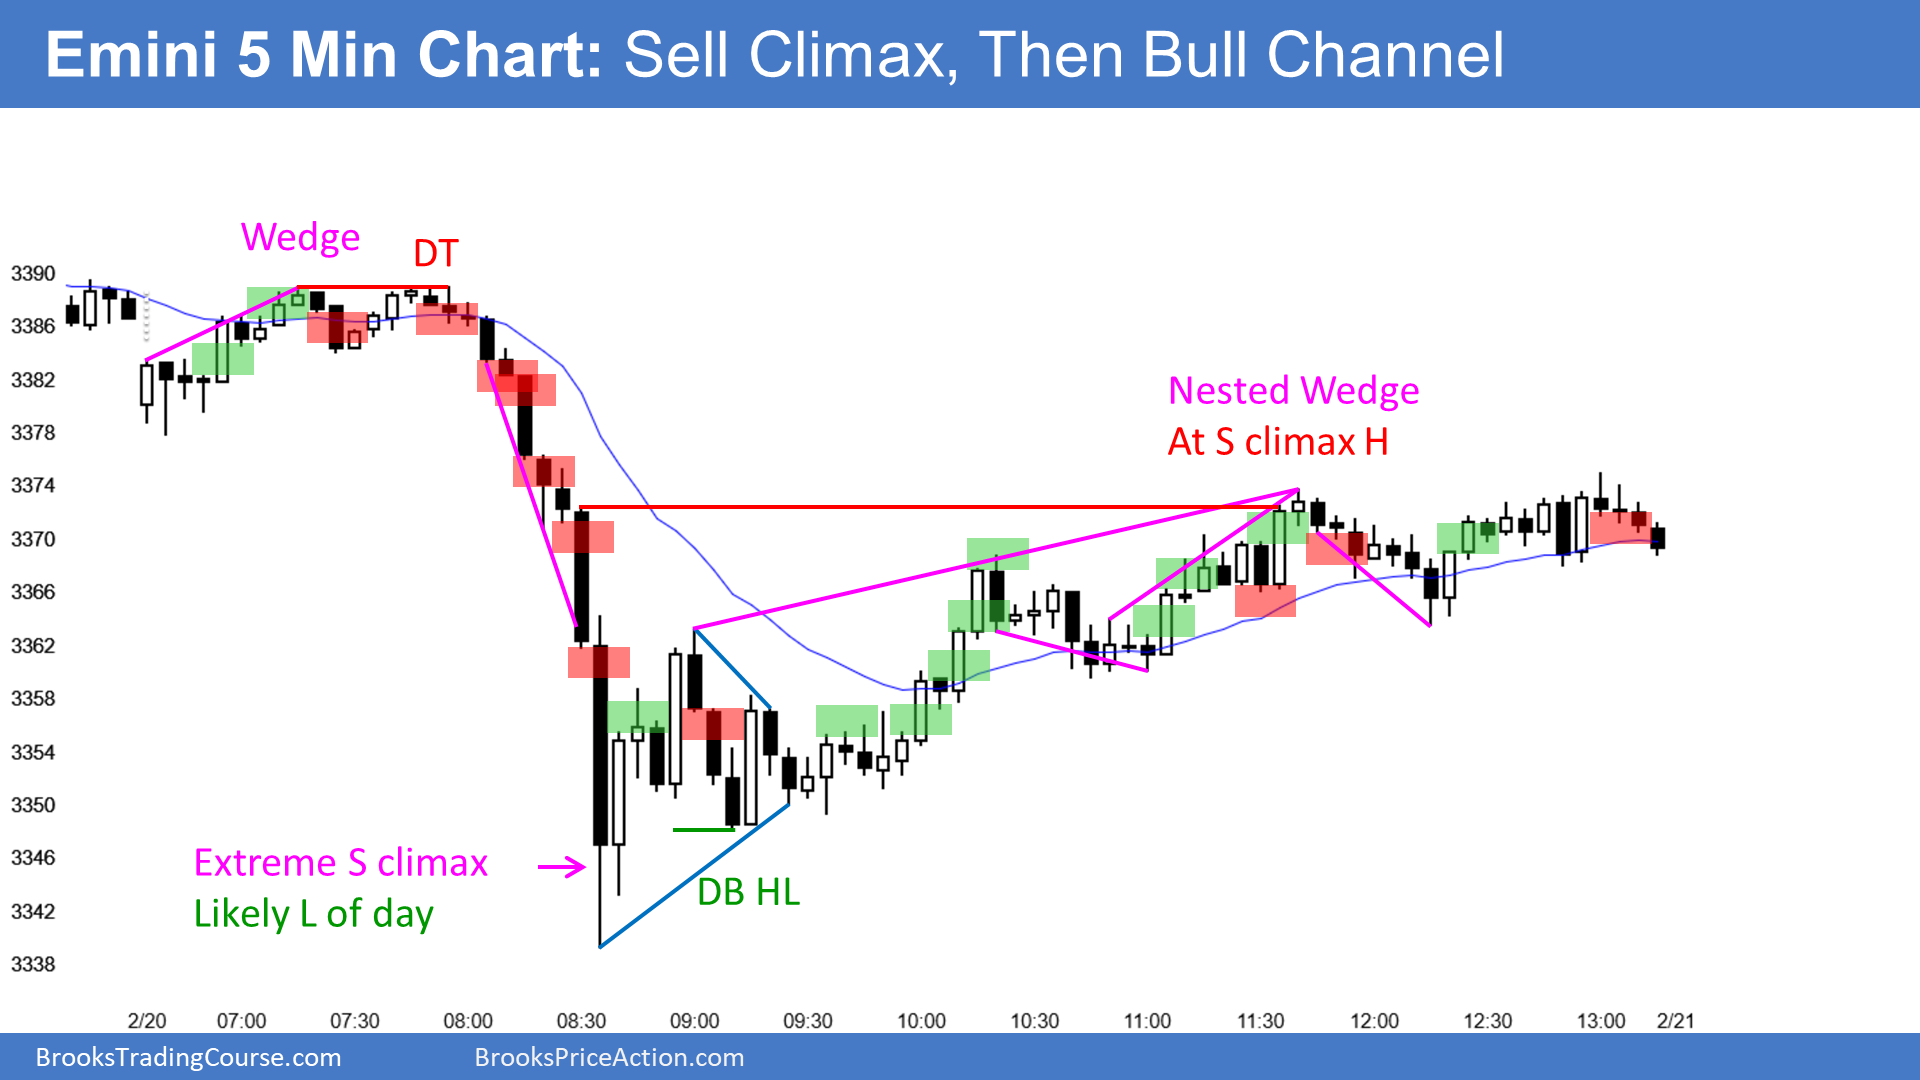 Emini wedge top and then sell climax and bull channel